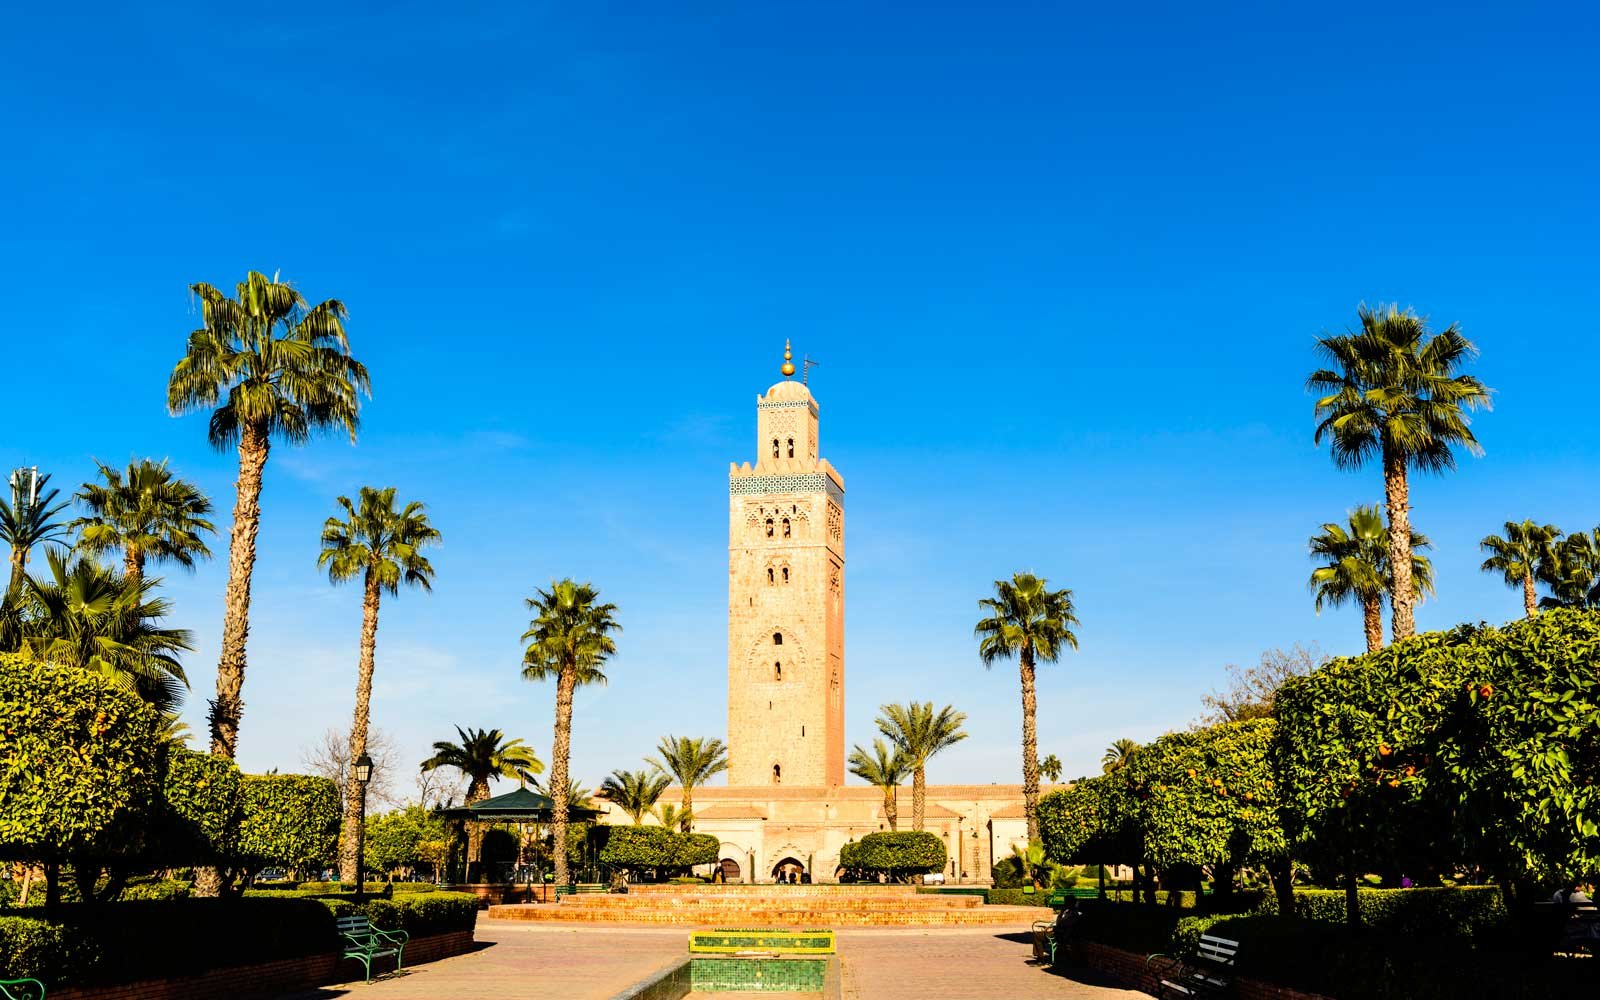 Communication on this topic: 9 Reasons to Visit Marrakech In The , 9-reasons-to-visit-marrakech-in-the/